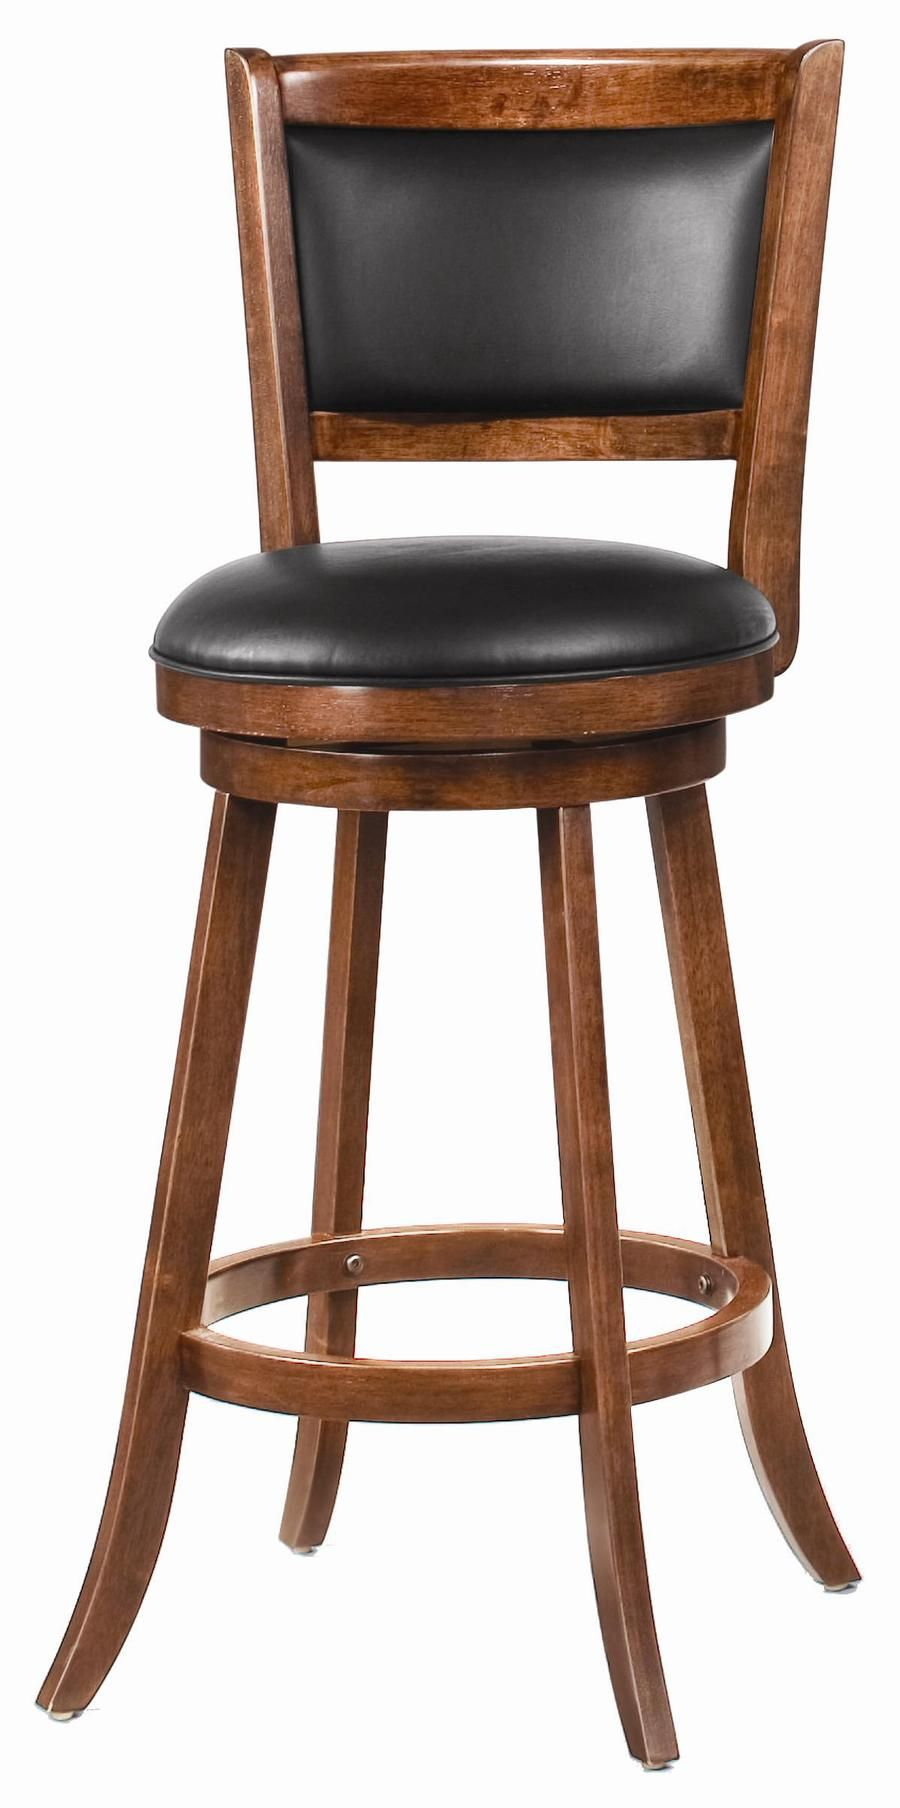 Furniture,Cheap And Cool Leather Swivel Bar Stool With Back Design And Cool  Wood Frame - Cheap Wood Bar Stools Show Home Design